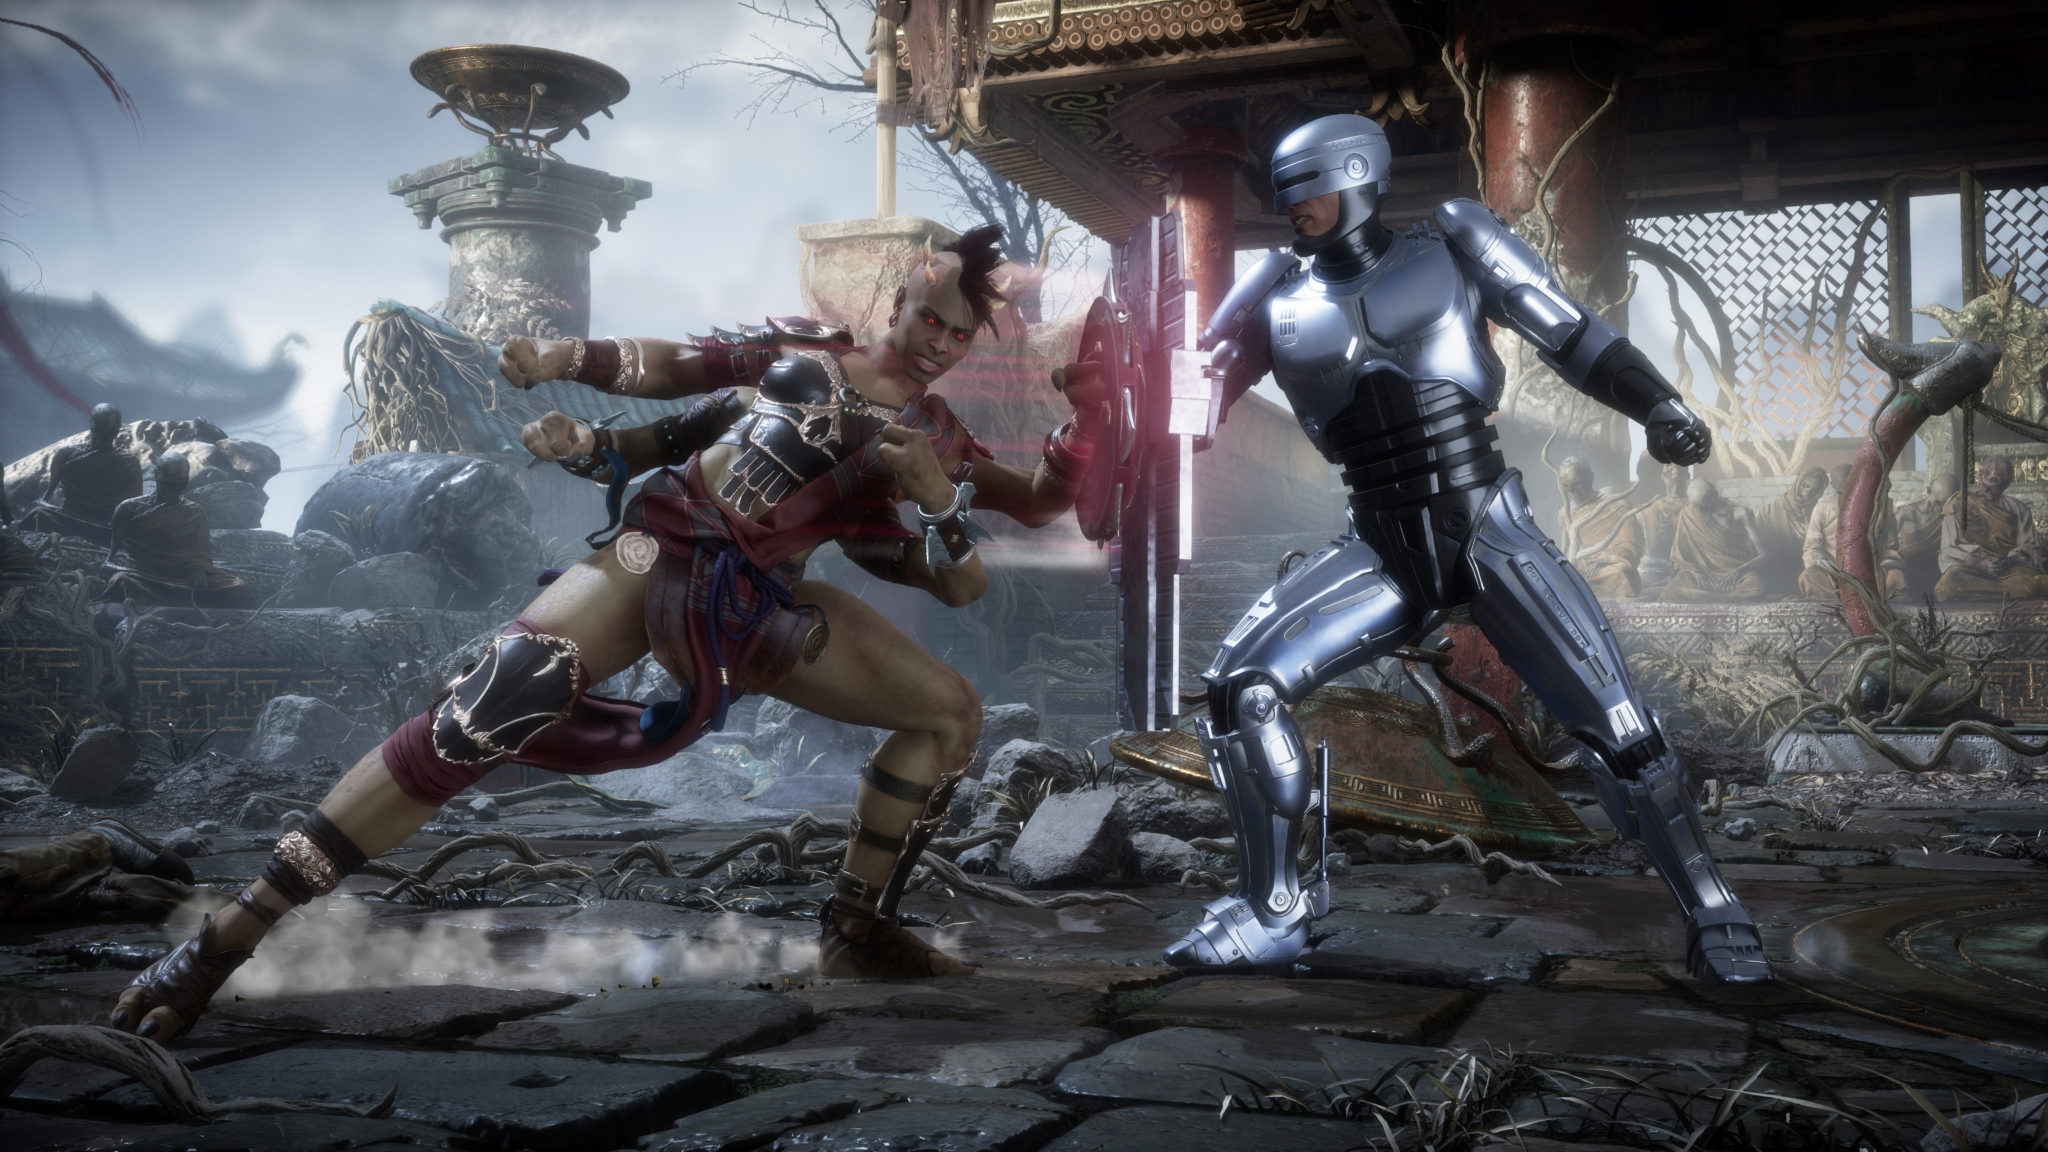 Spin S Peter Collins Reviews Mortal Kombat 11 Aftermath Spin1038